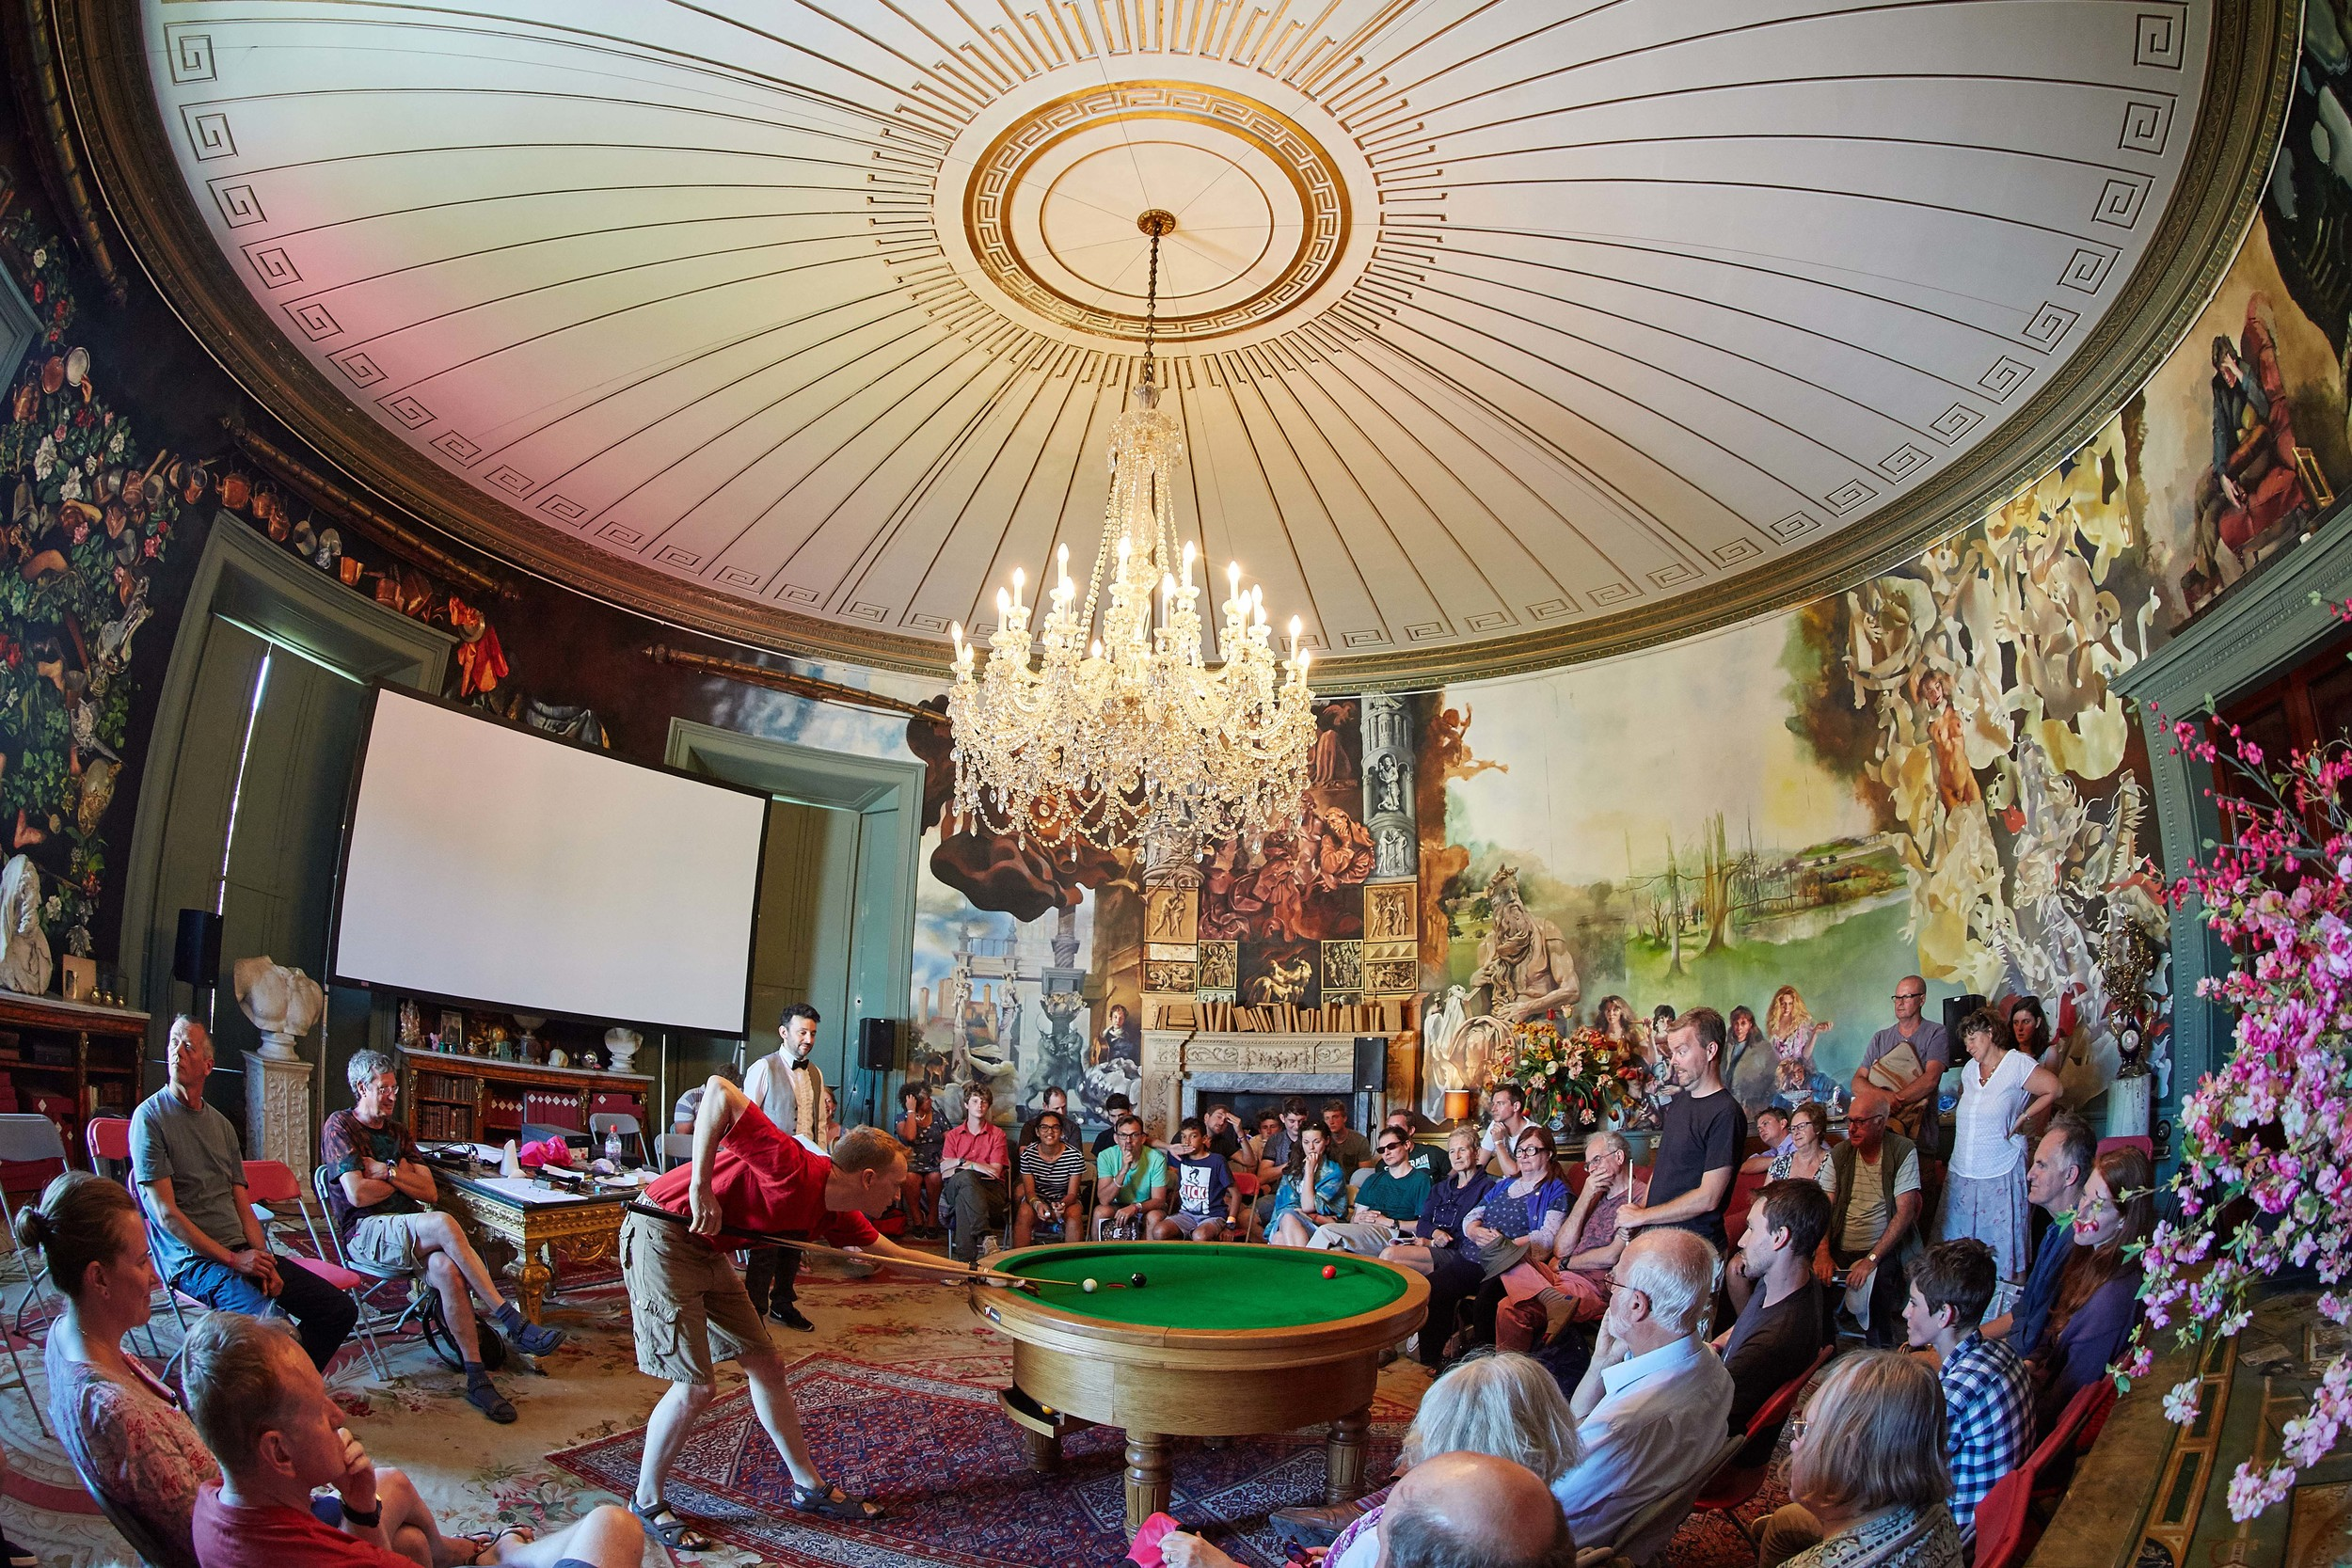 The official public launch of LOOP, at the Port Eliot Festival, July 31, 2015. Picture: Michael Bowles.